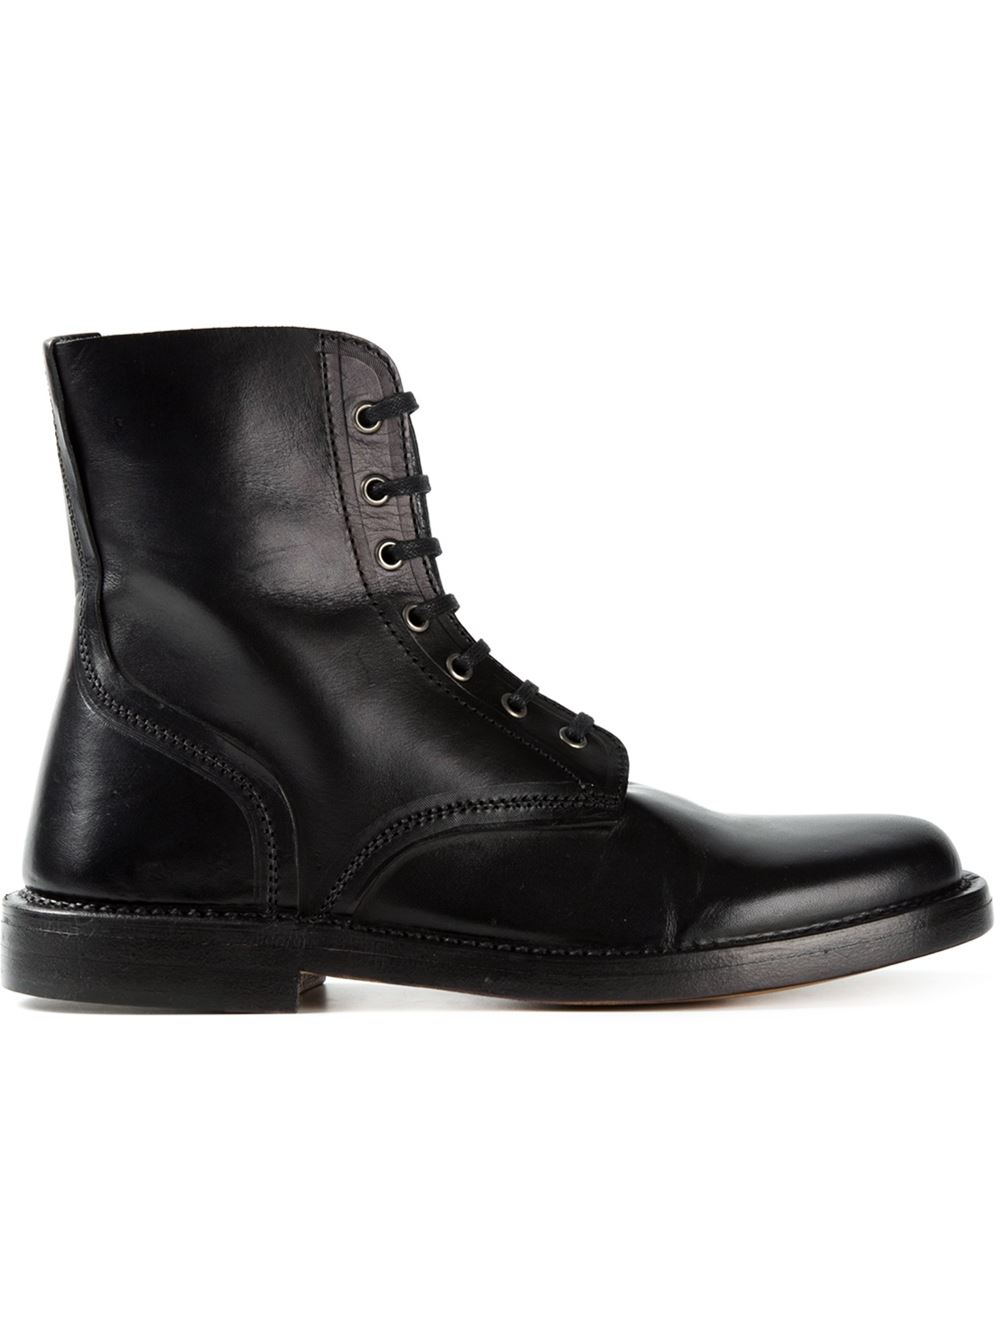 Alexander Mcqueen Lace Up Combat Boots In Black For Men Lyst